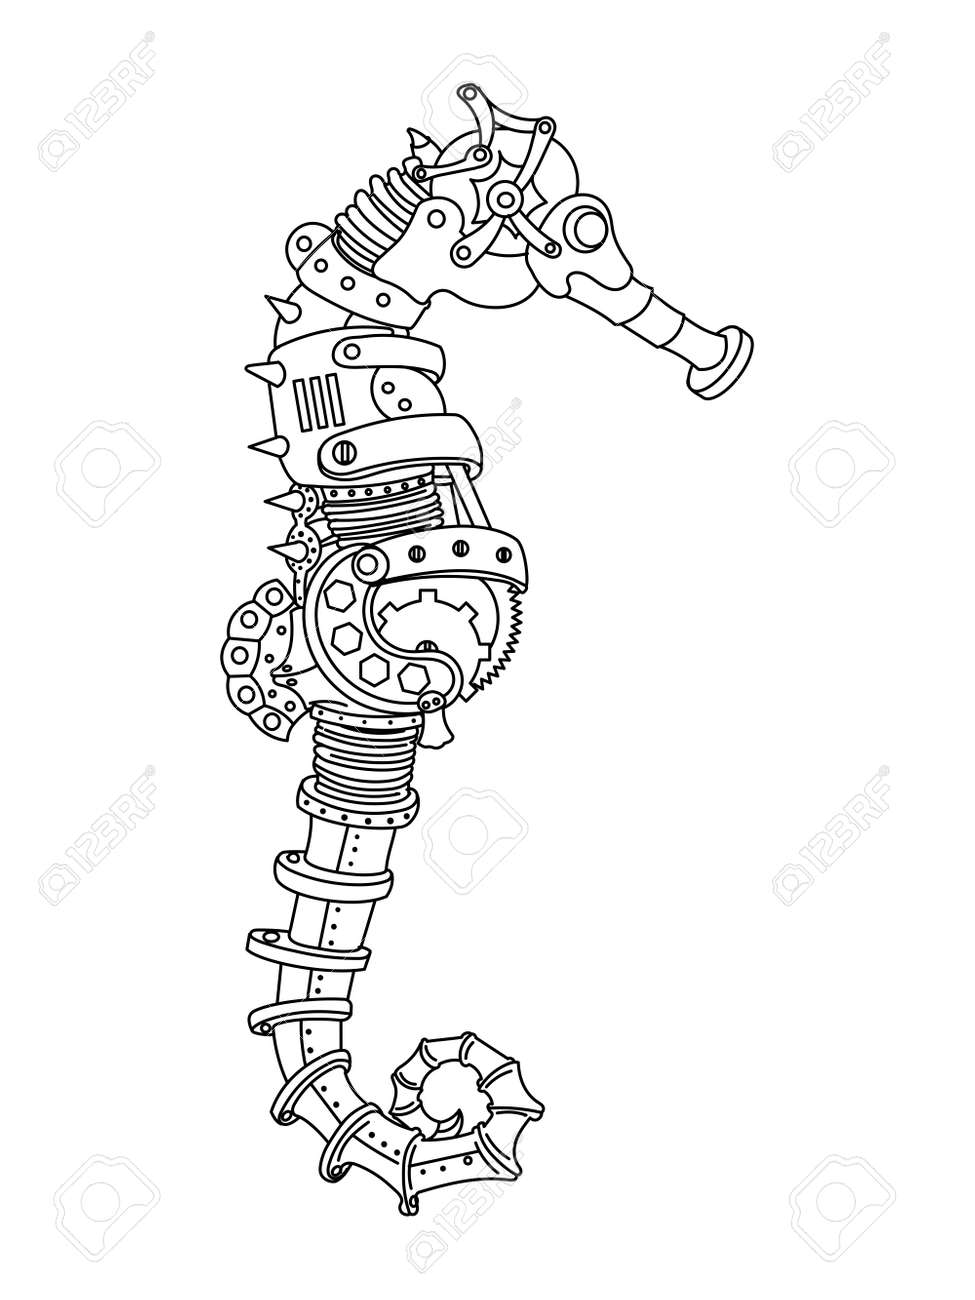 ste unk style sea horse mechanical animal coloring book for  ste unk style sea horse mechanical animal coloring book for adult vector illustration stock